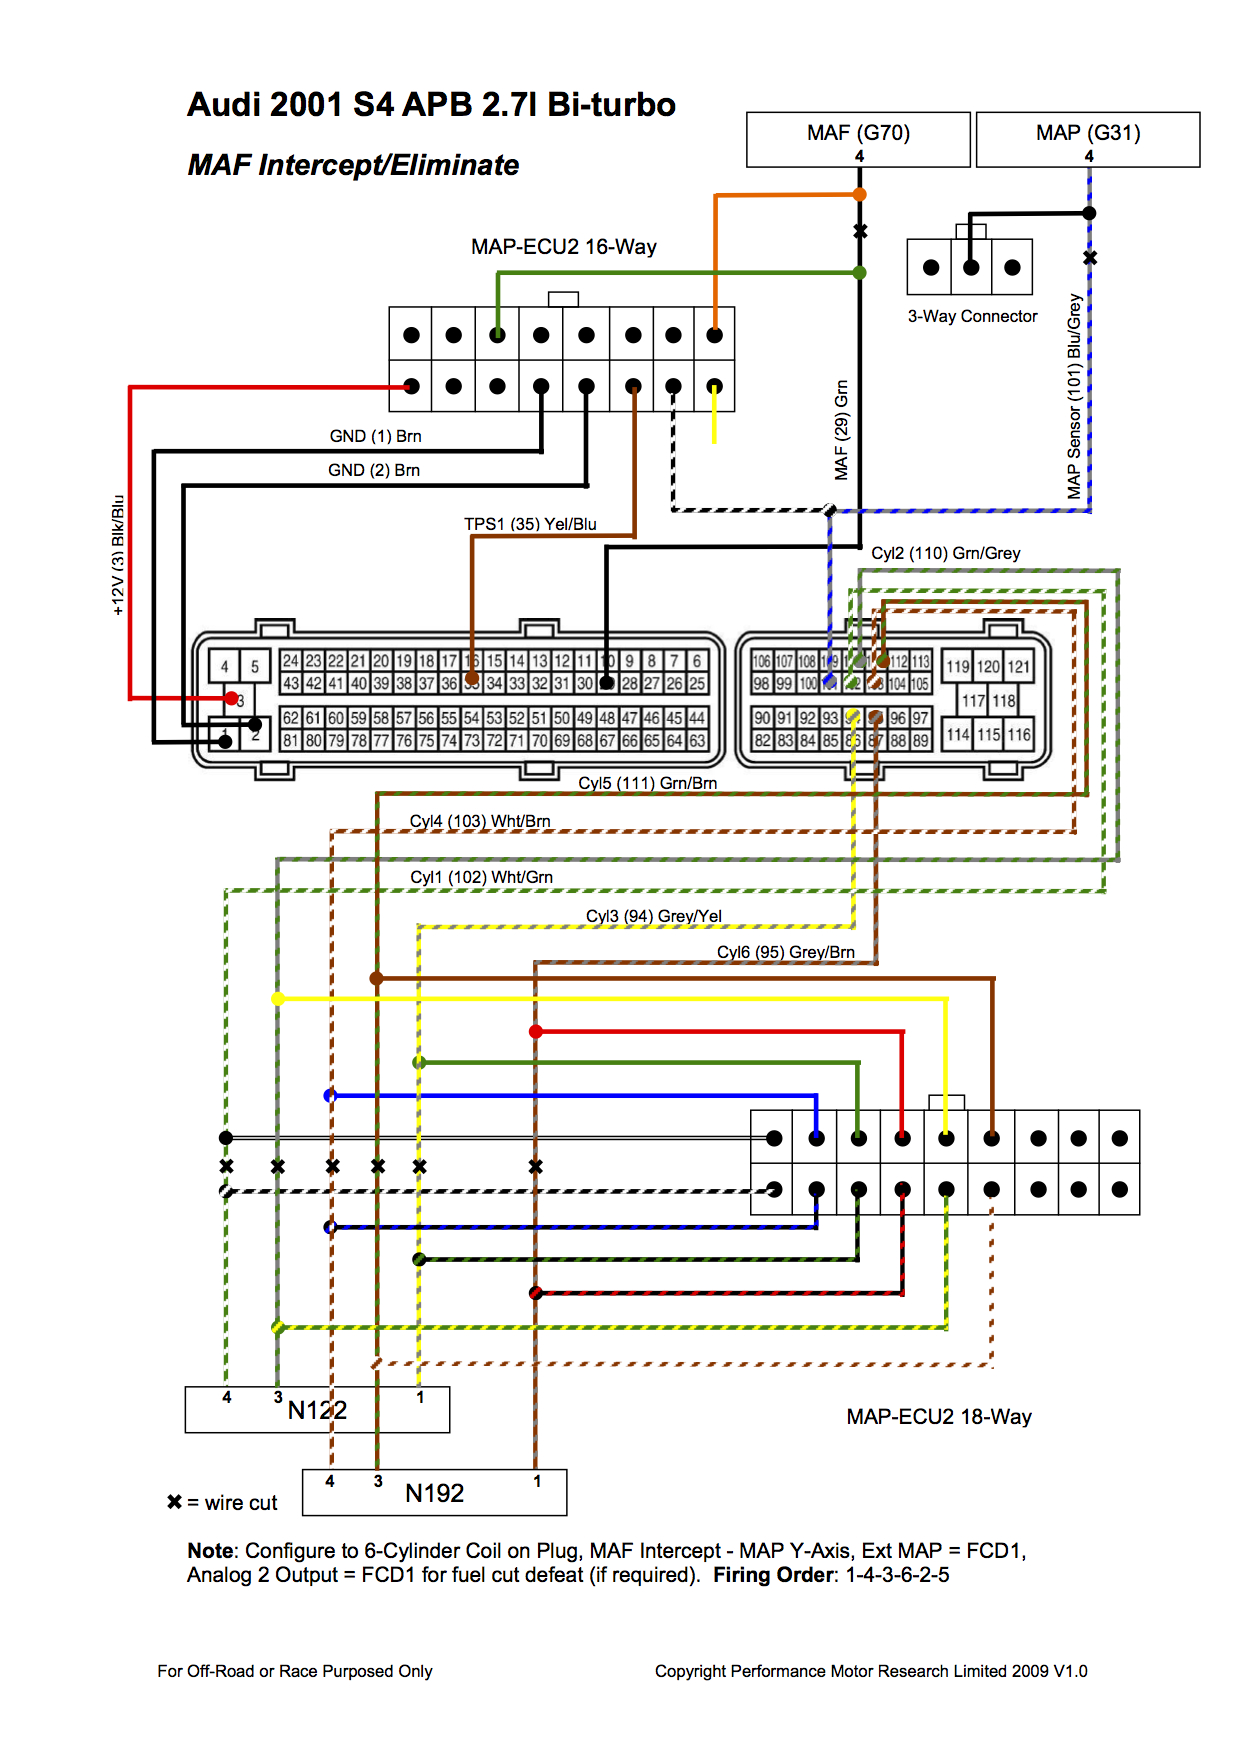 Audi S4 20011 ecu wiring diagram paccar ecu wiring diagram \u2022 wiring diagrams j vw polo 2010 wiring diagram pdf at pacquiaovsvargaslive.co